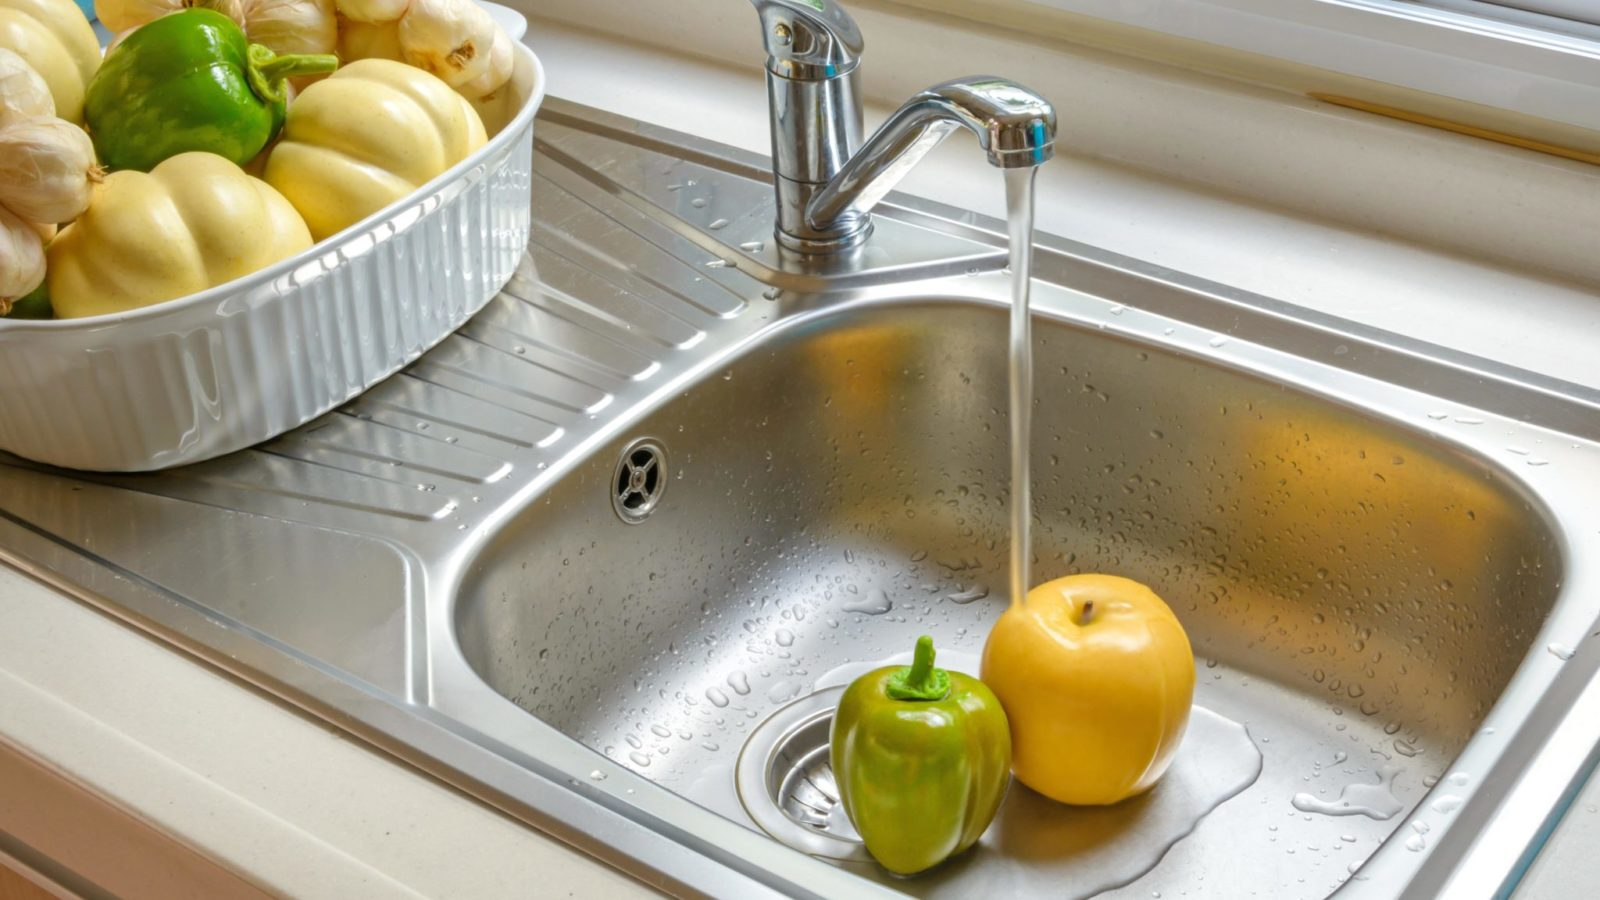 Kitchen faucet with a flowing water washing